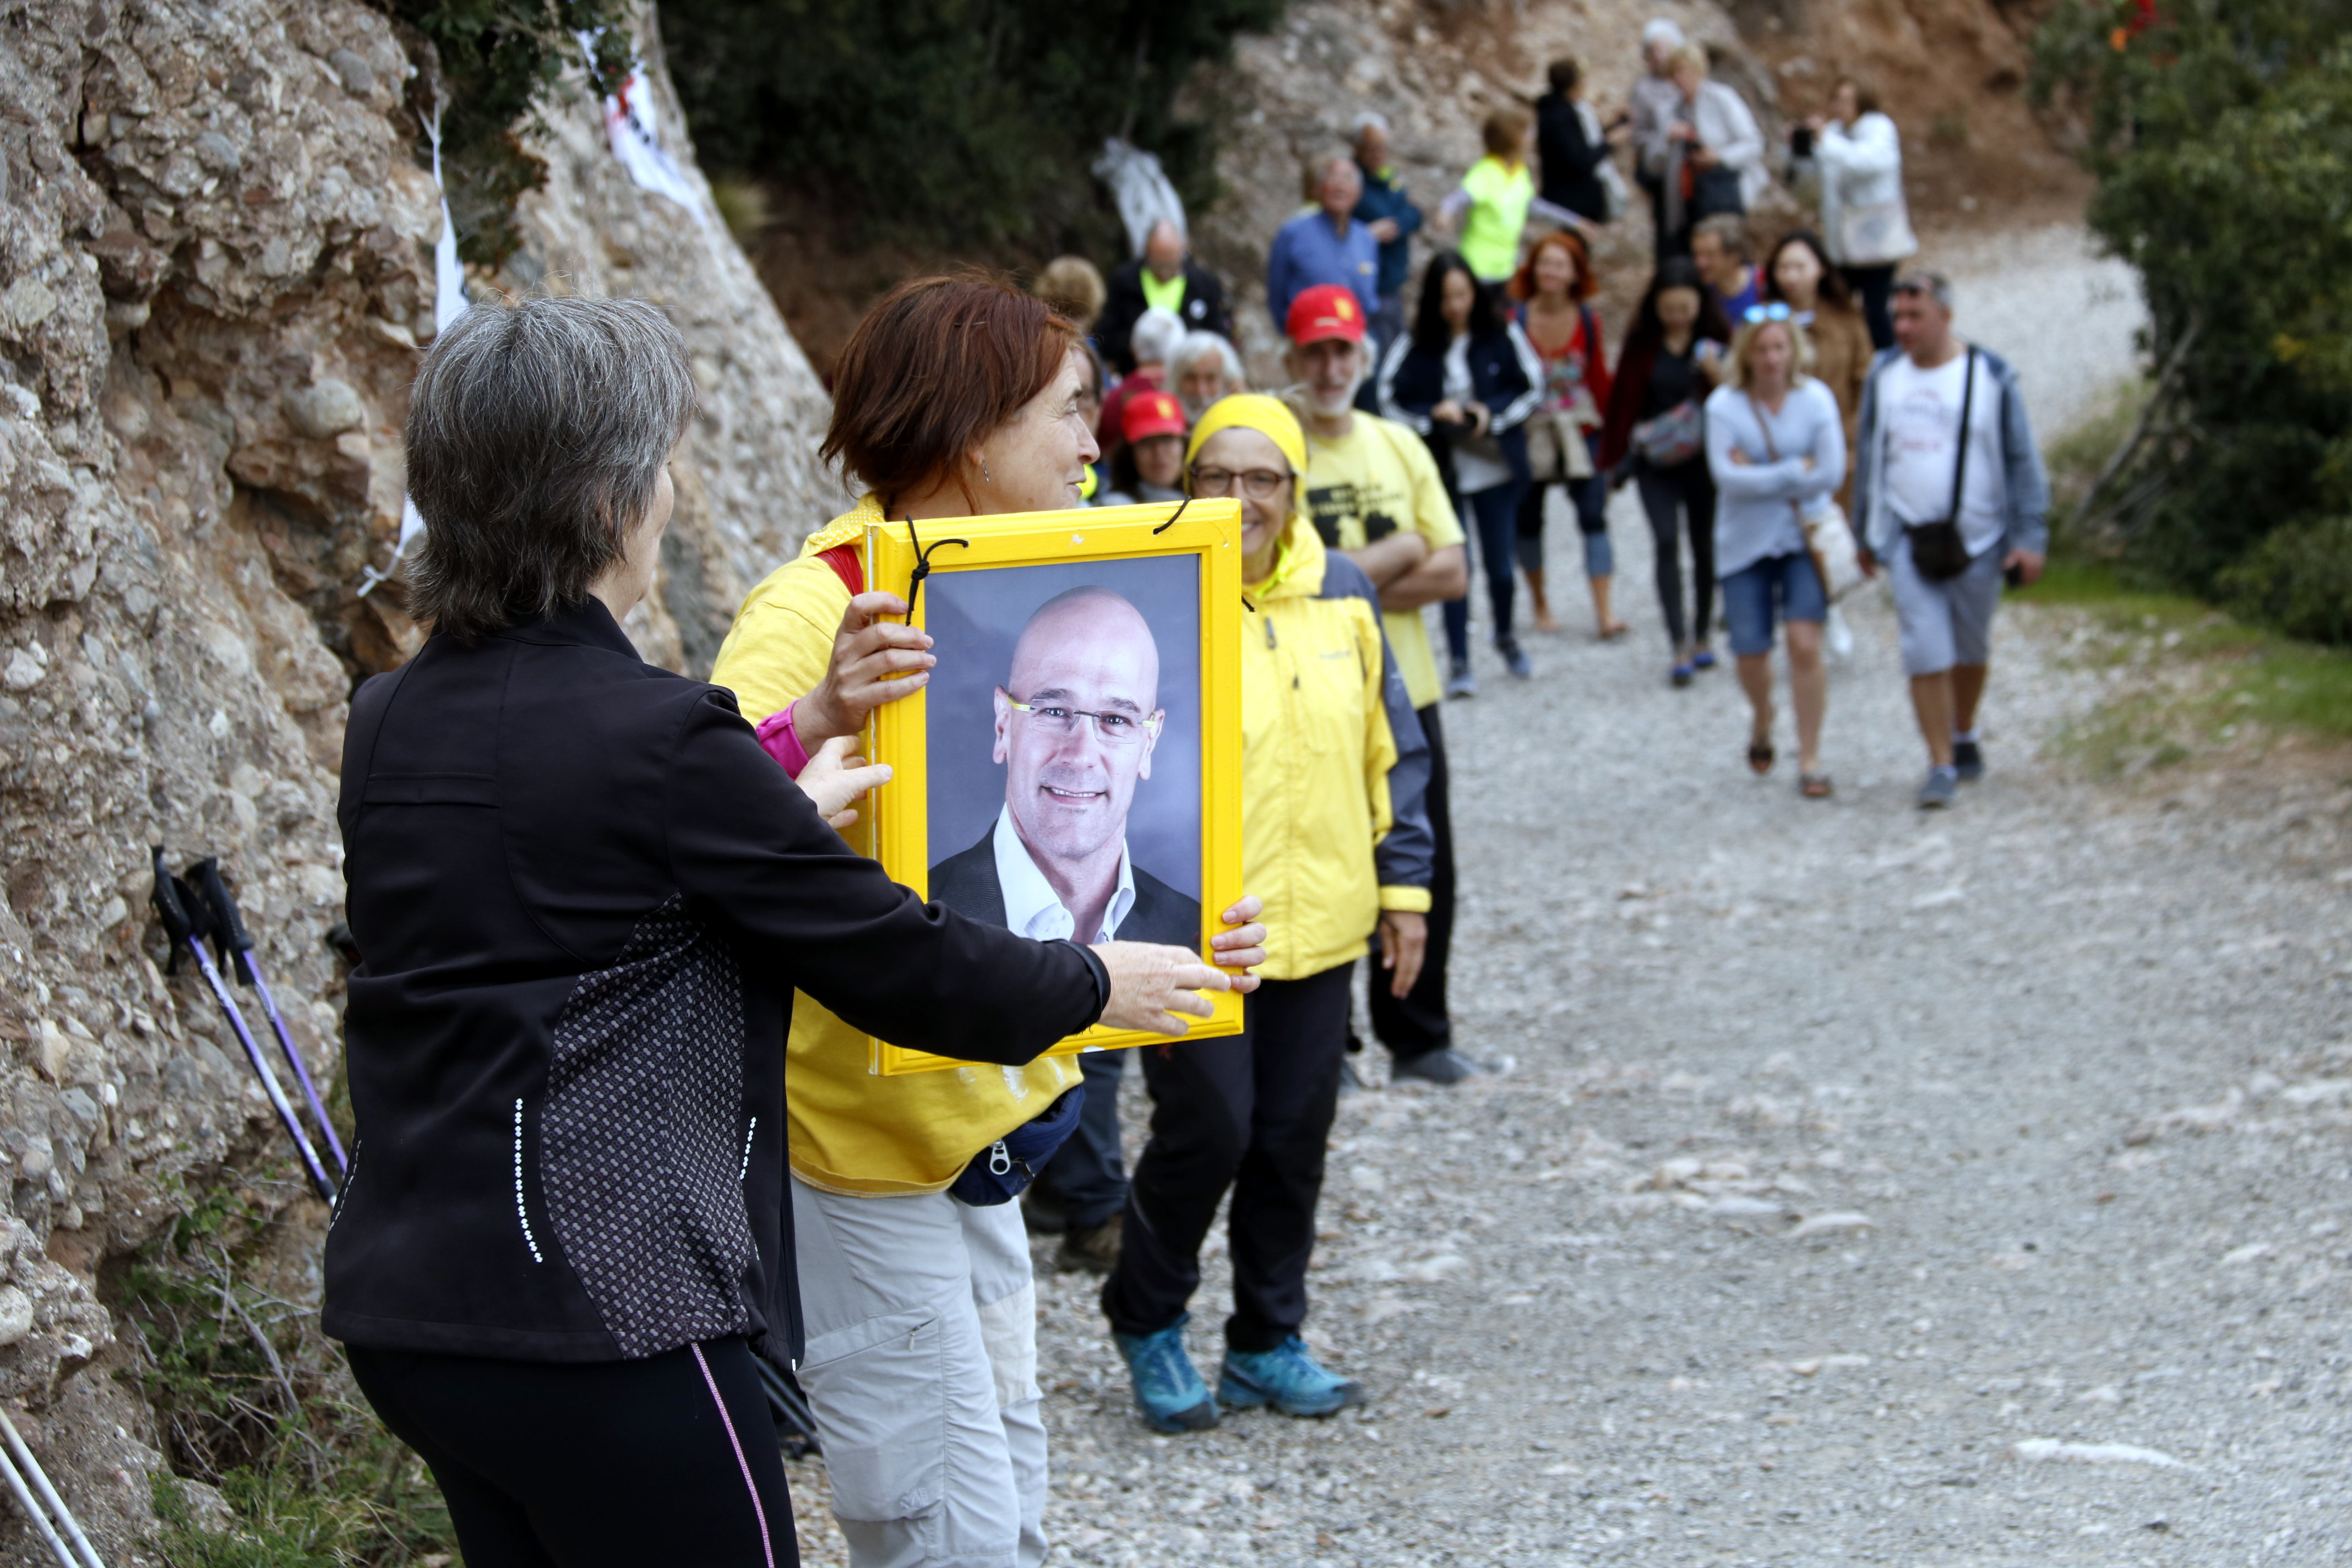 Protesters carry a picture of jailed MP Raül Romeva to the top of a mountain (by ACN)